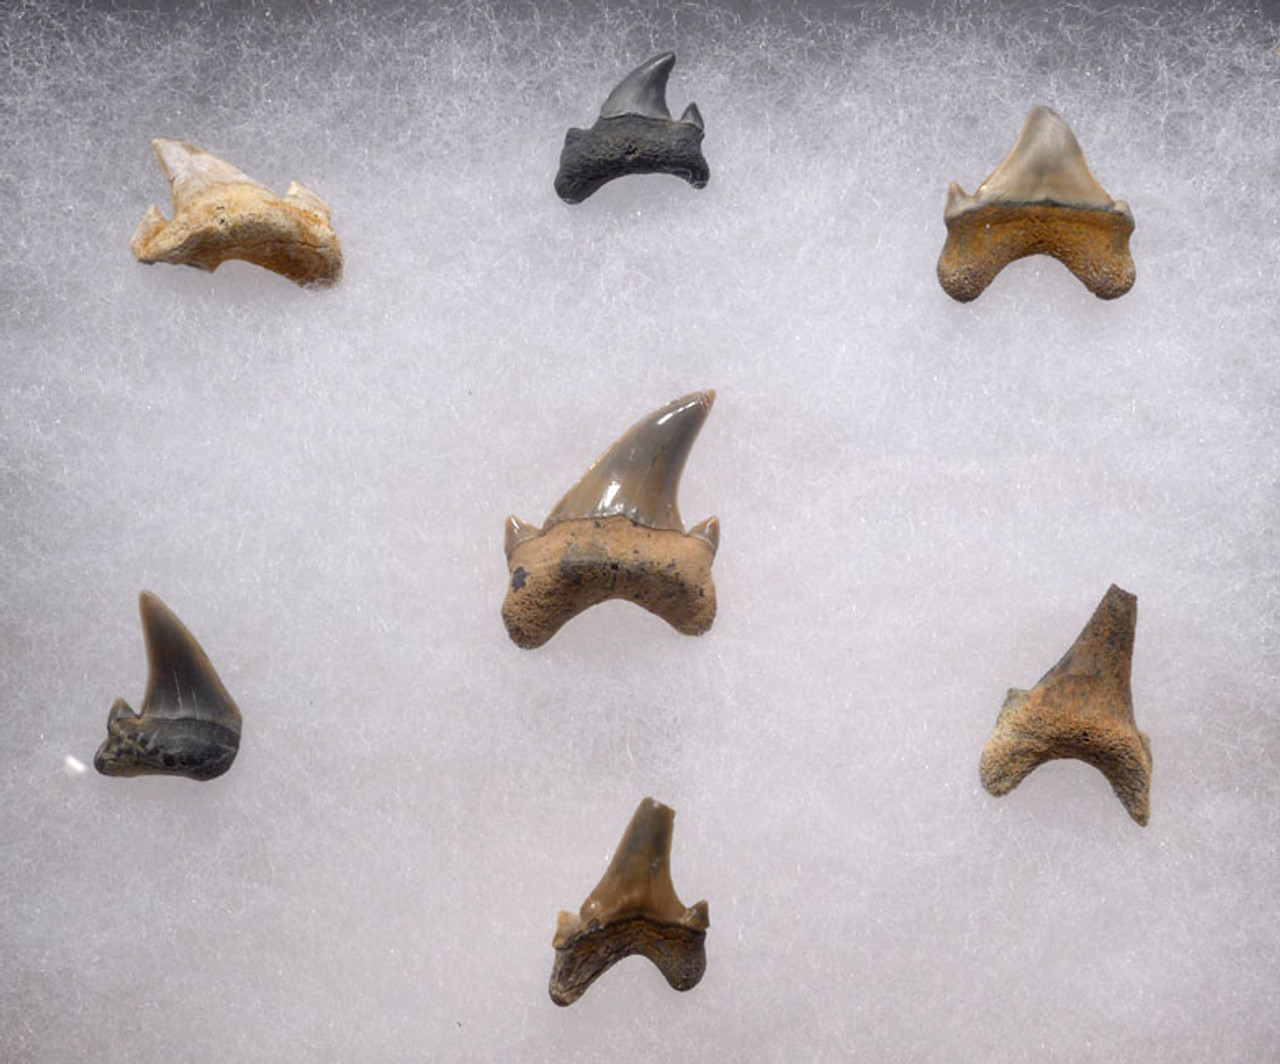 SHX035 - RARE SET OF DINOSAUR ERA CRETACEOUS FOSSIL SHARK TEETH FROM TWO MEDICINE FORMATION